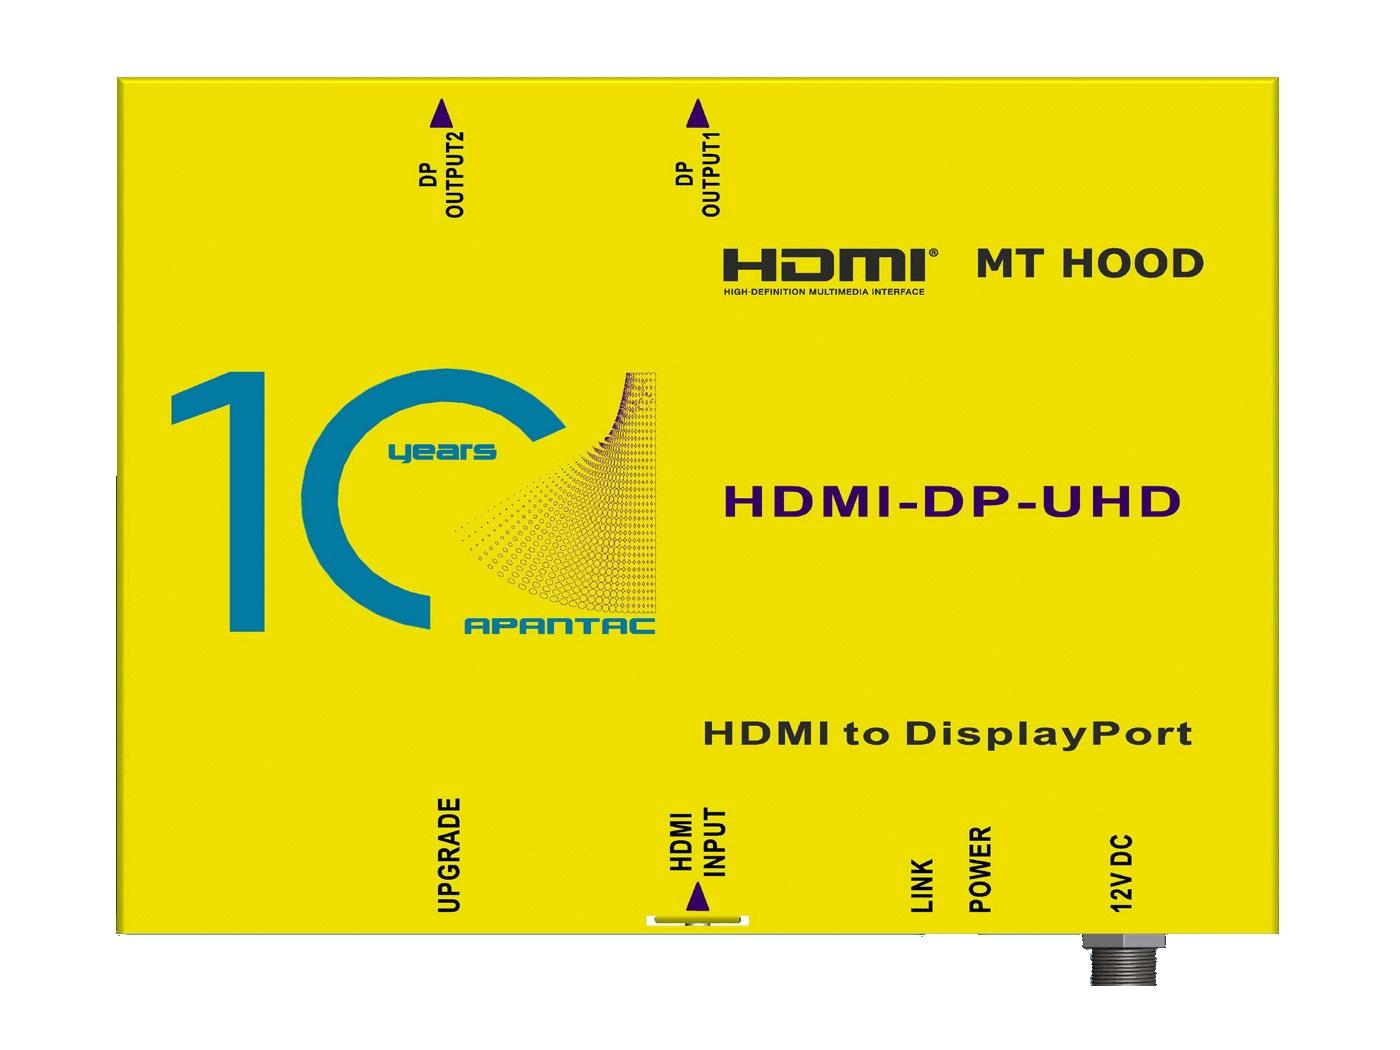 HDM-DP-UHD HDMI 2.0 to DP 1.2 Converter by Apantac